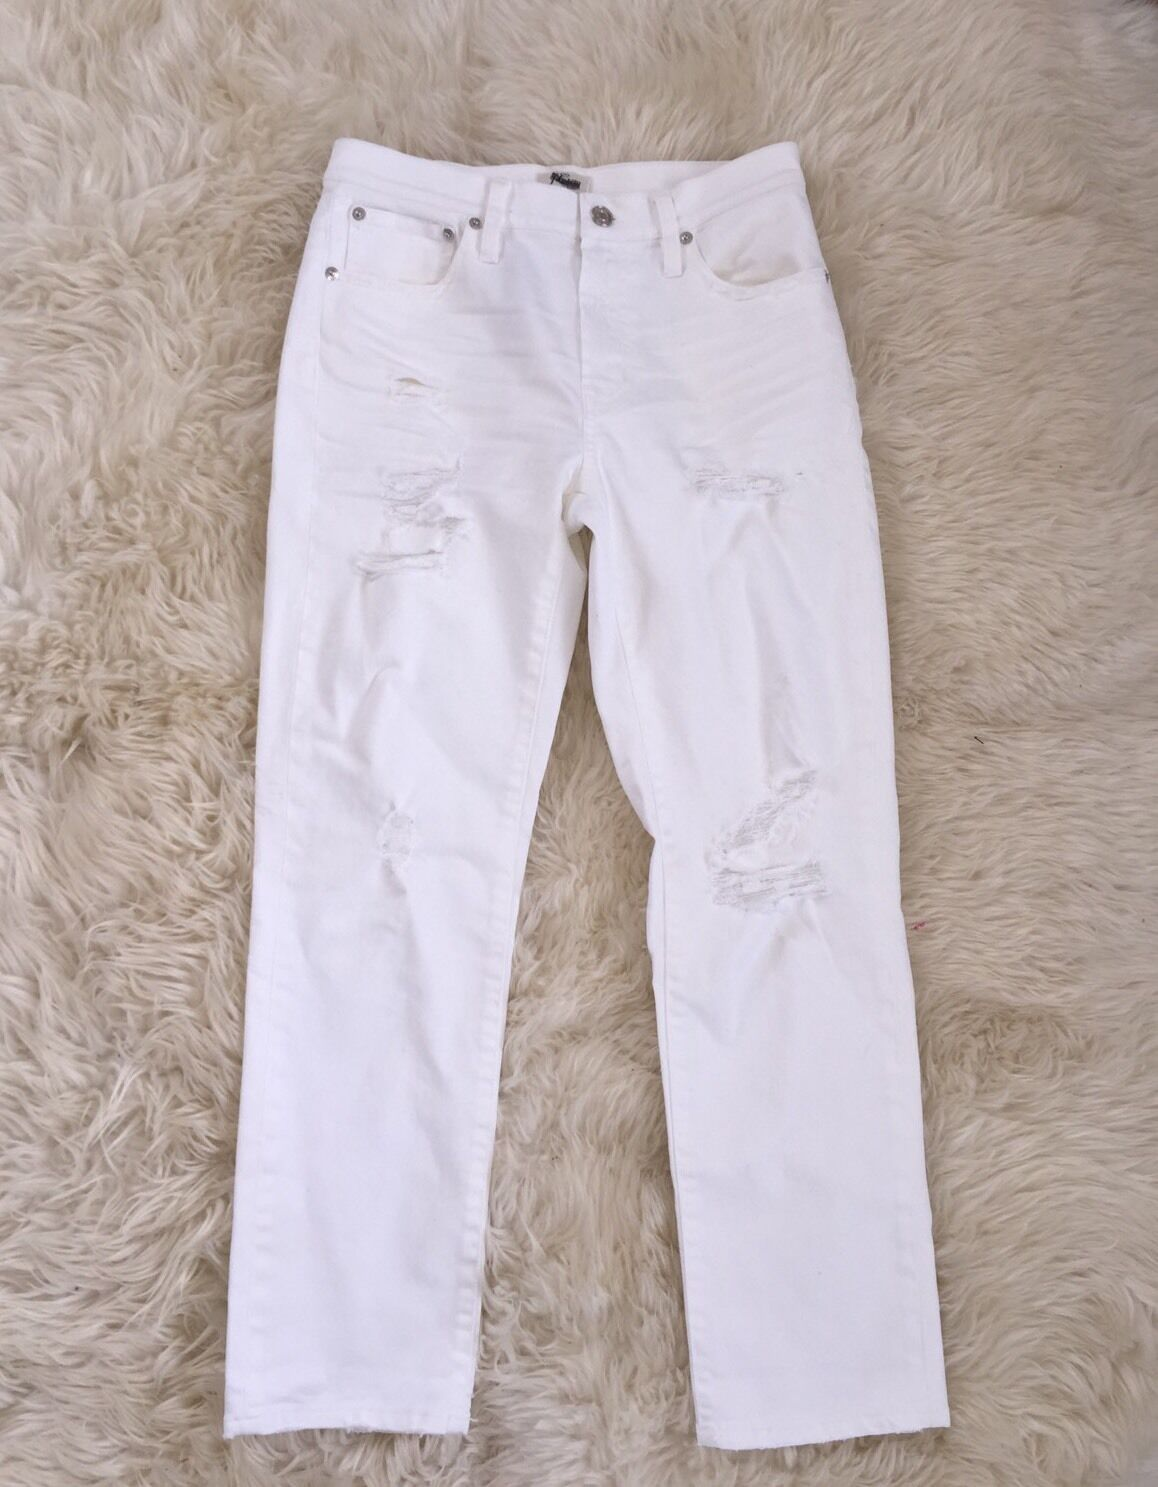 NWT  J Crew Vintage Crop Jean In Destroyed White 27 G2341 CURRENT SOLD-OUT